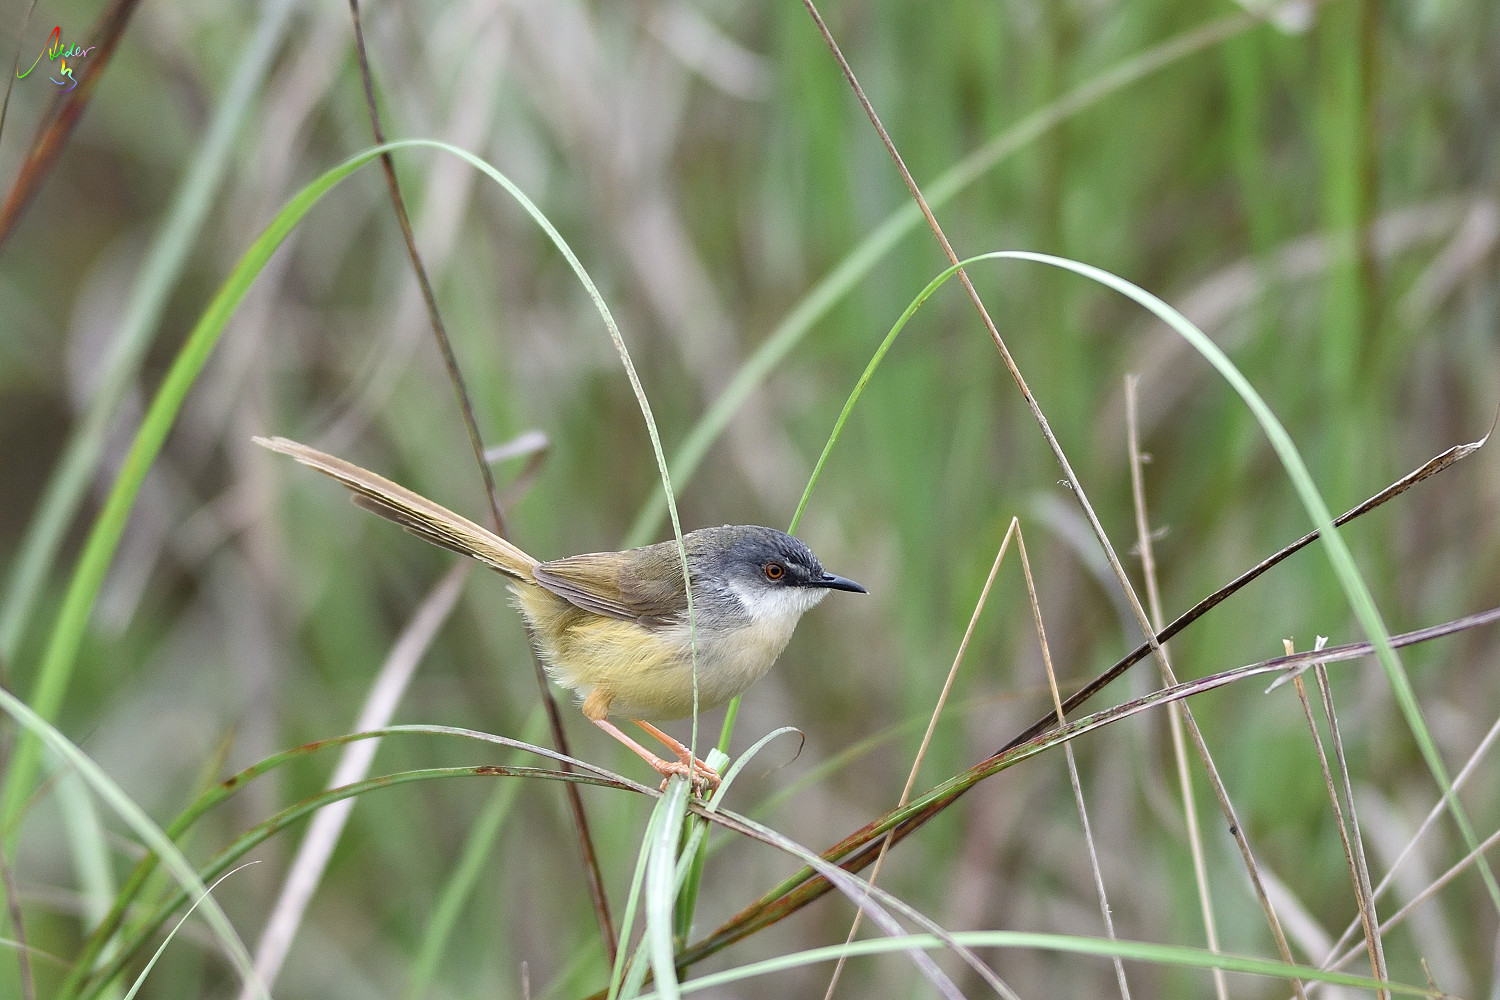 Yellow-bellied_Prinia_3260